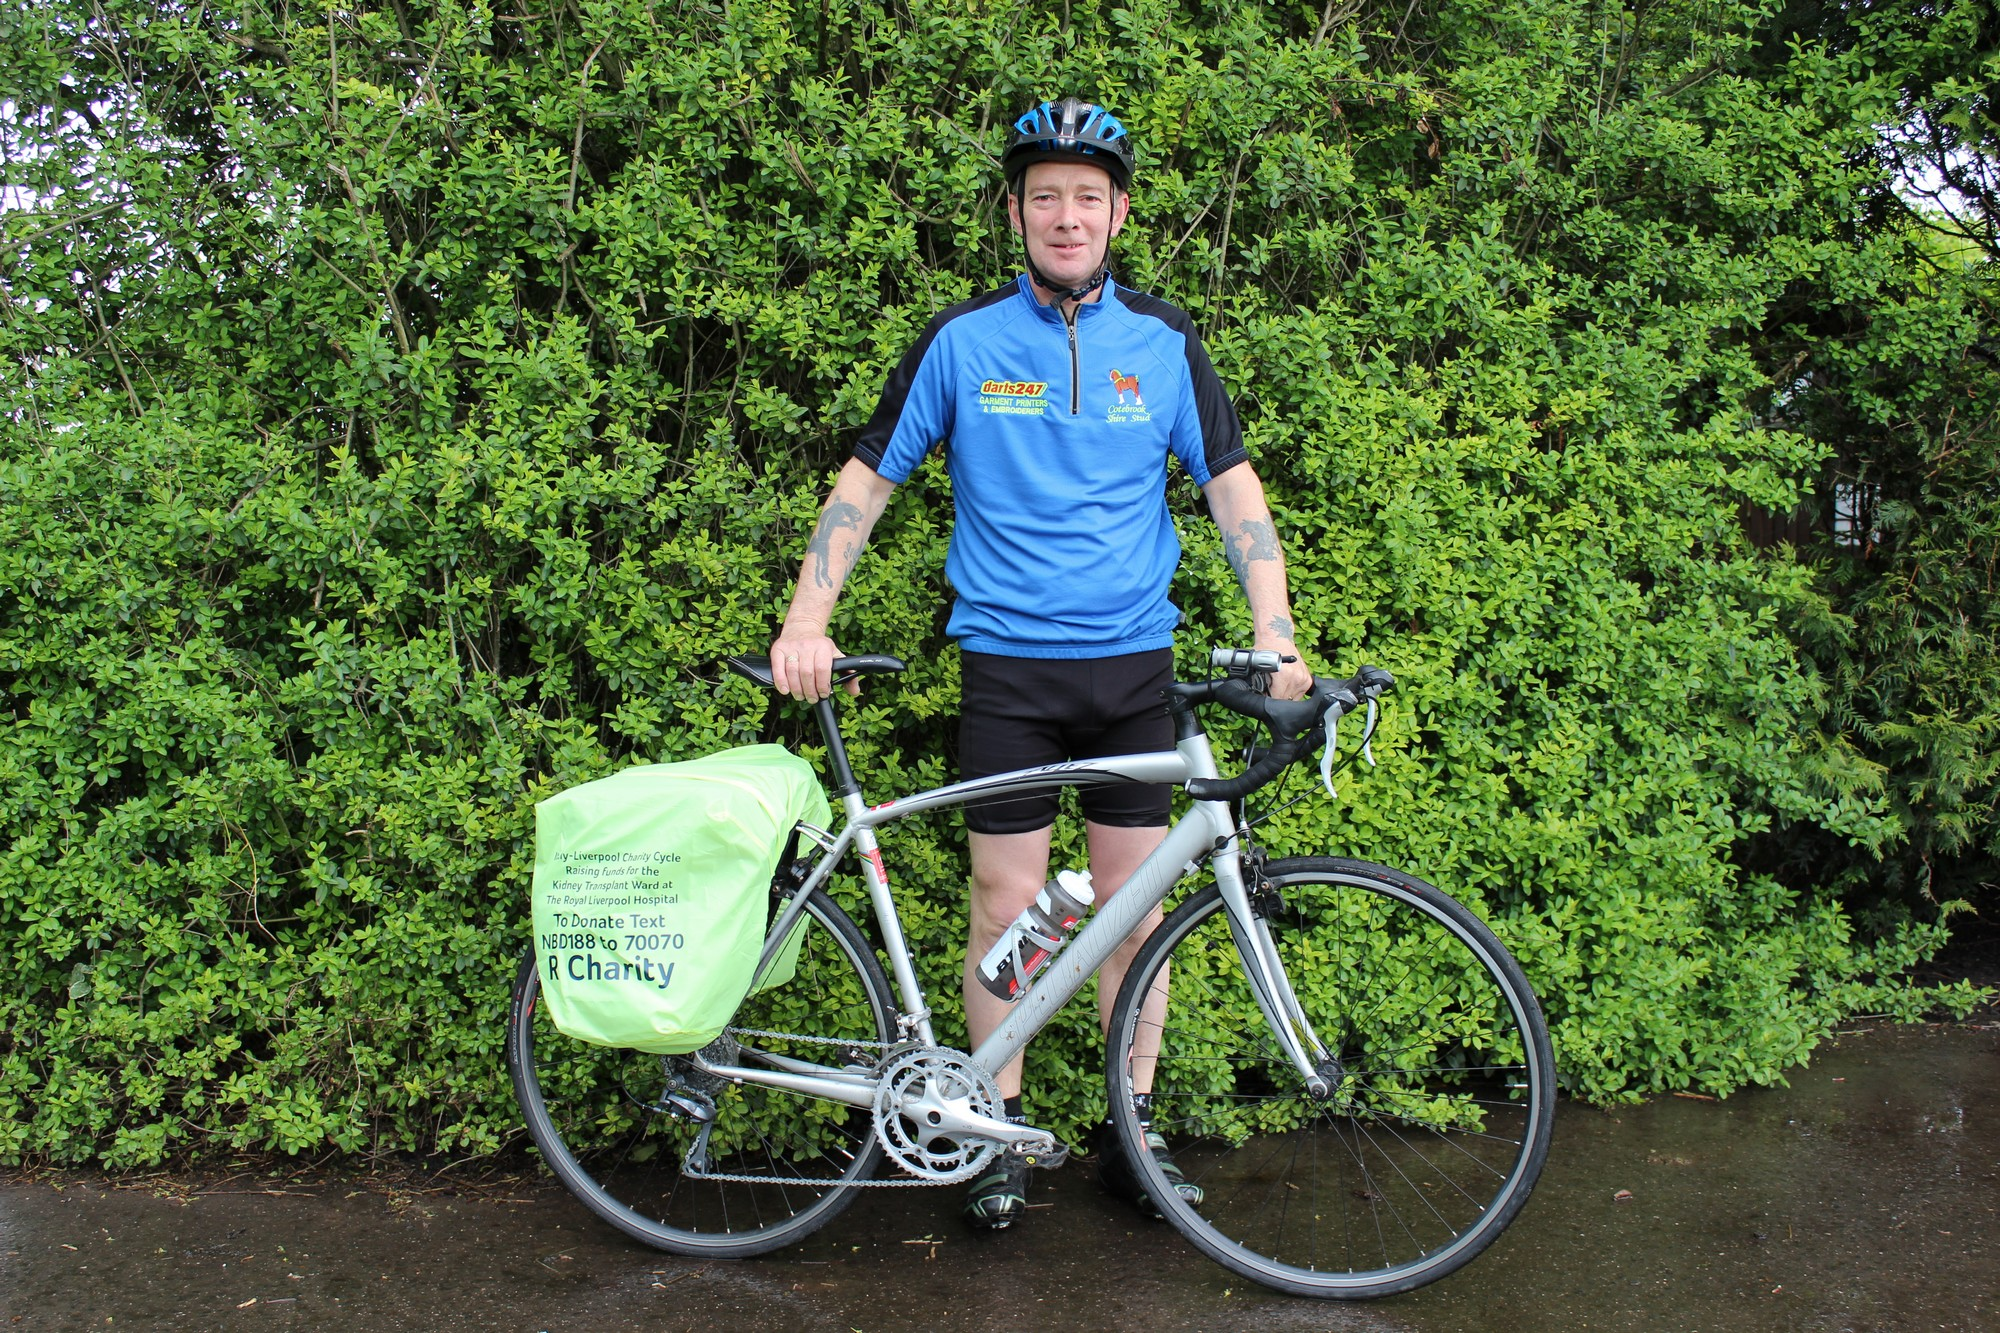 Dave swaps horse power for pedal power for hospital